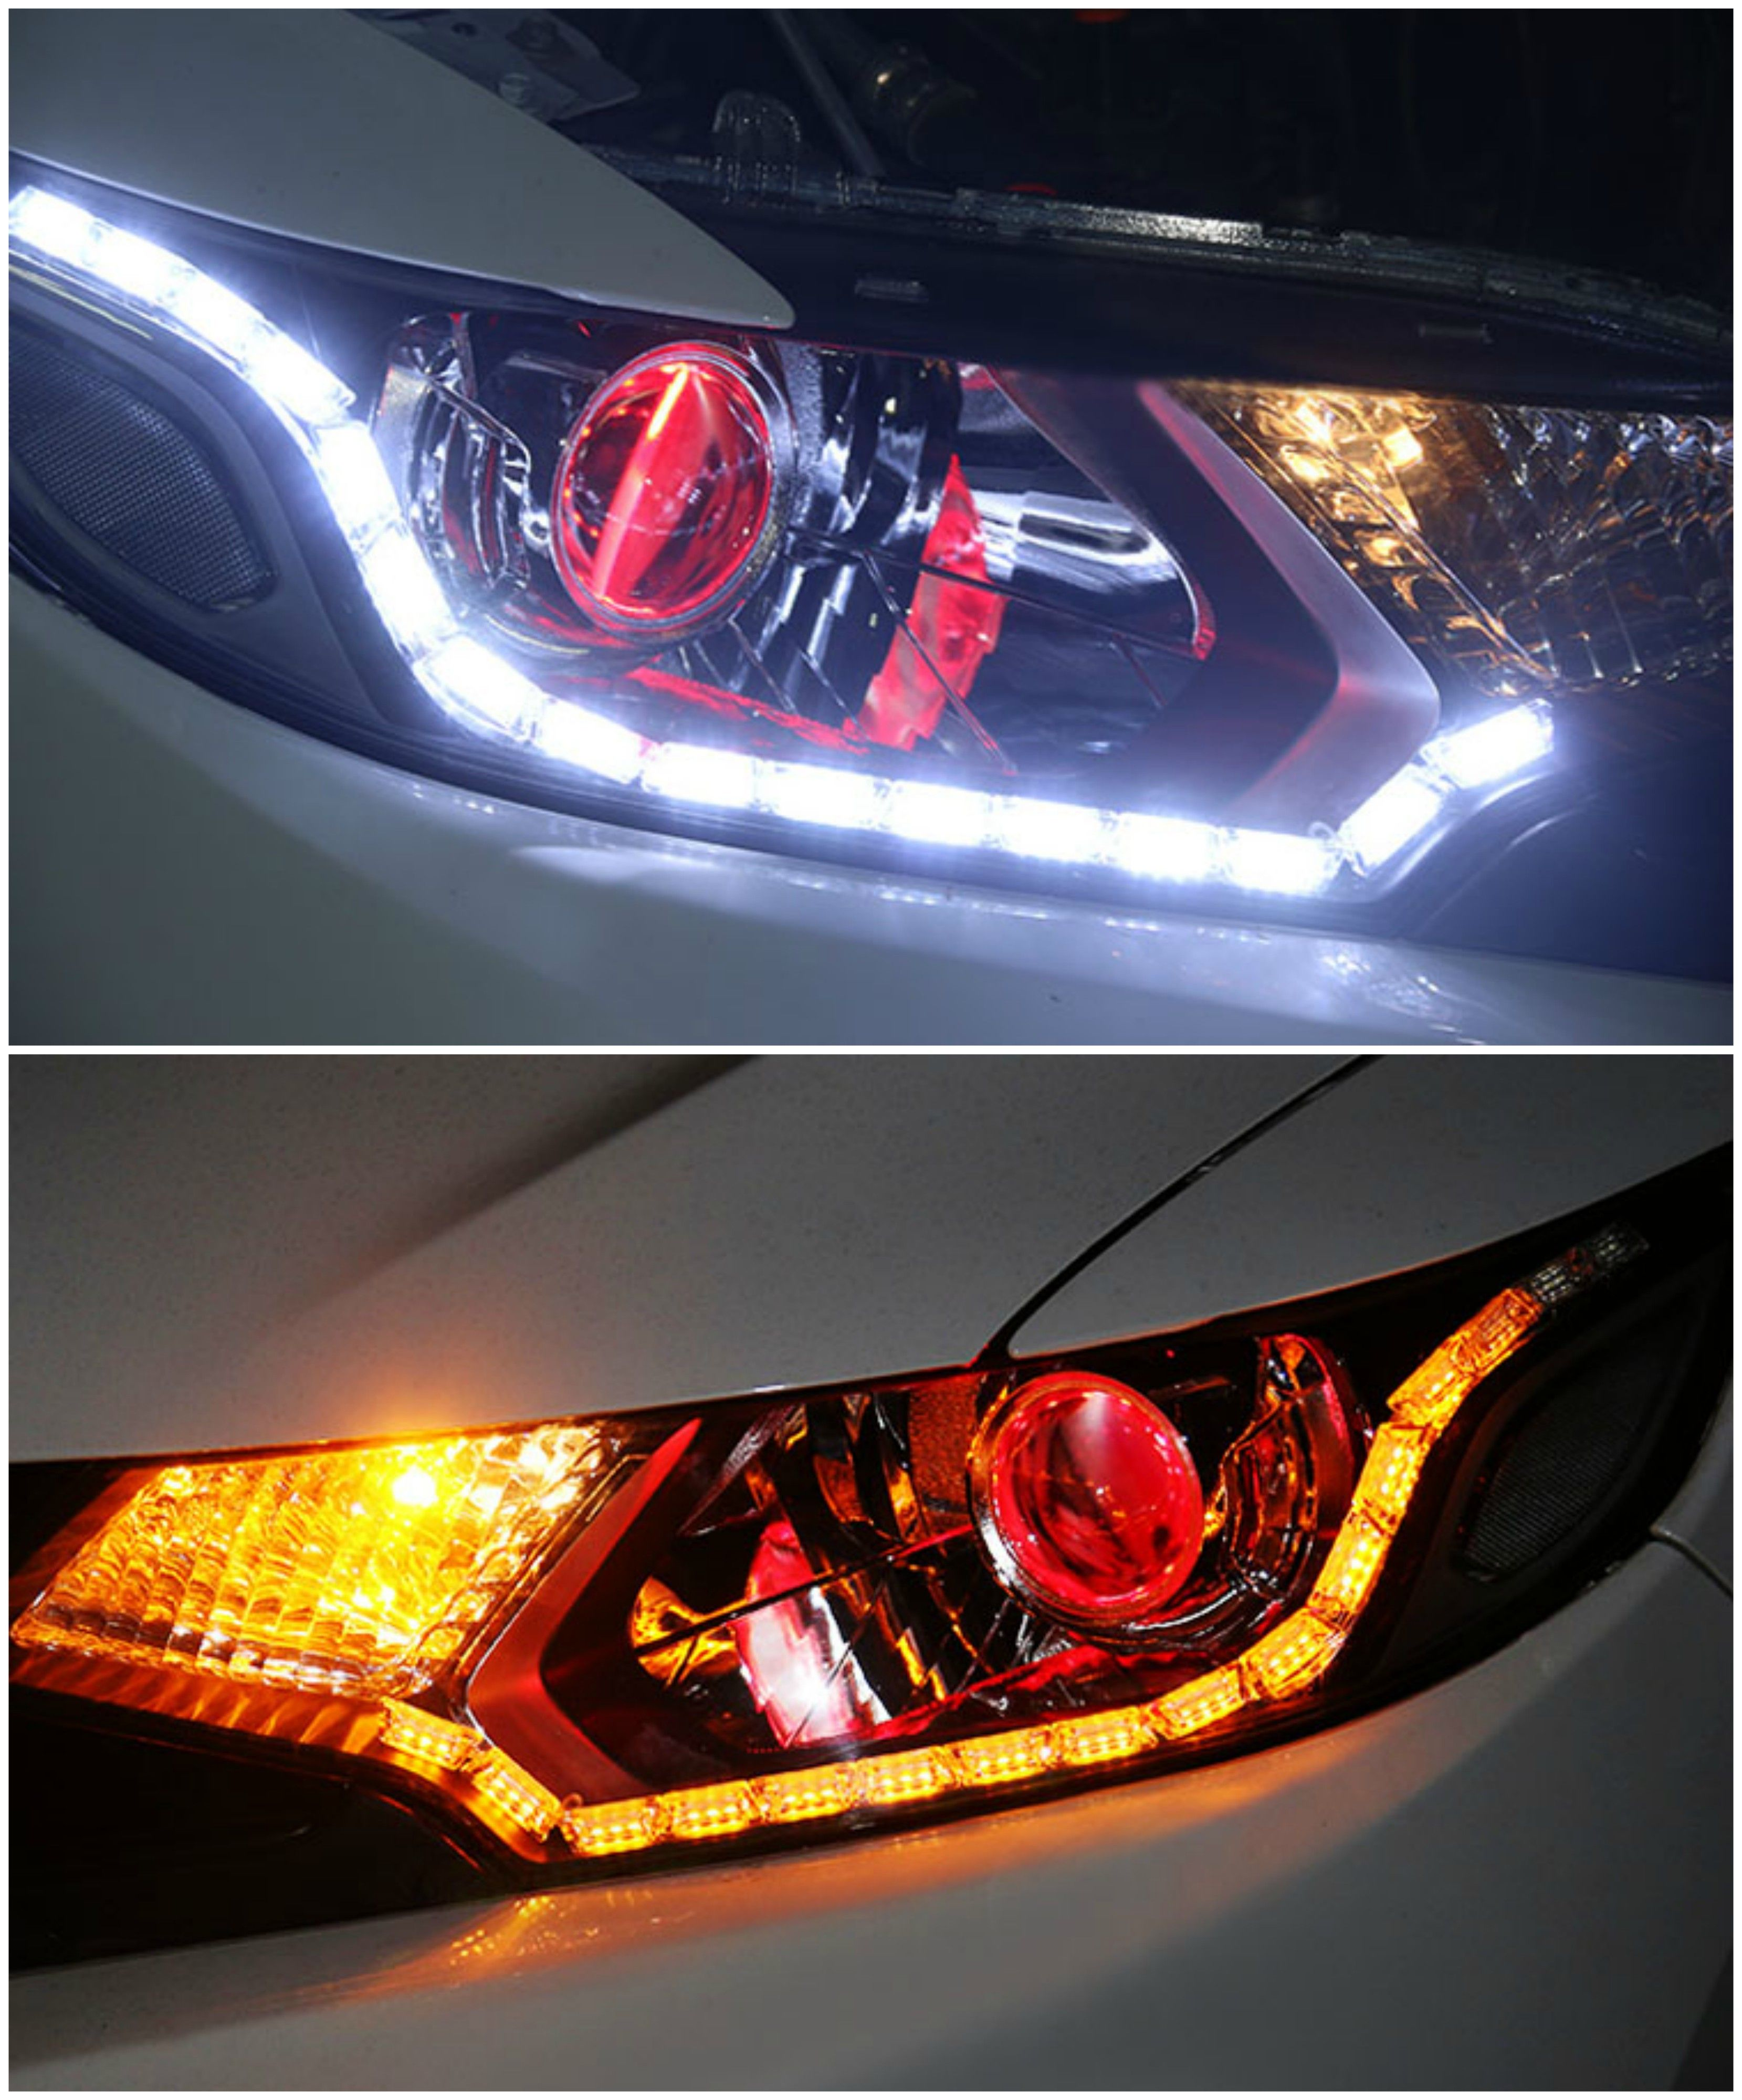 White Amber Switchback Led Strip Lighting For Headlight Retrofit W Sequential Turn Signal Feature Led Strip Lighting Strip Lighting Amber Led Lights